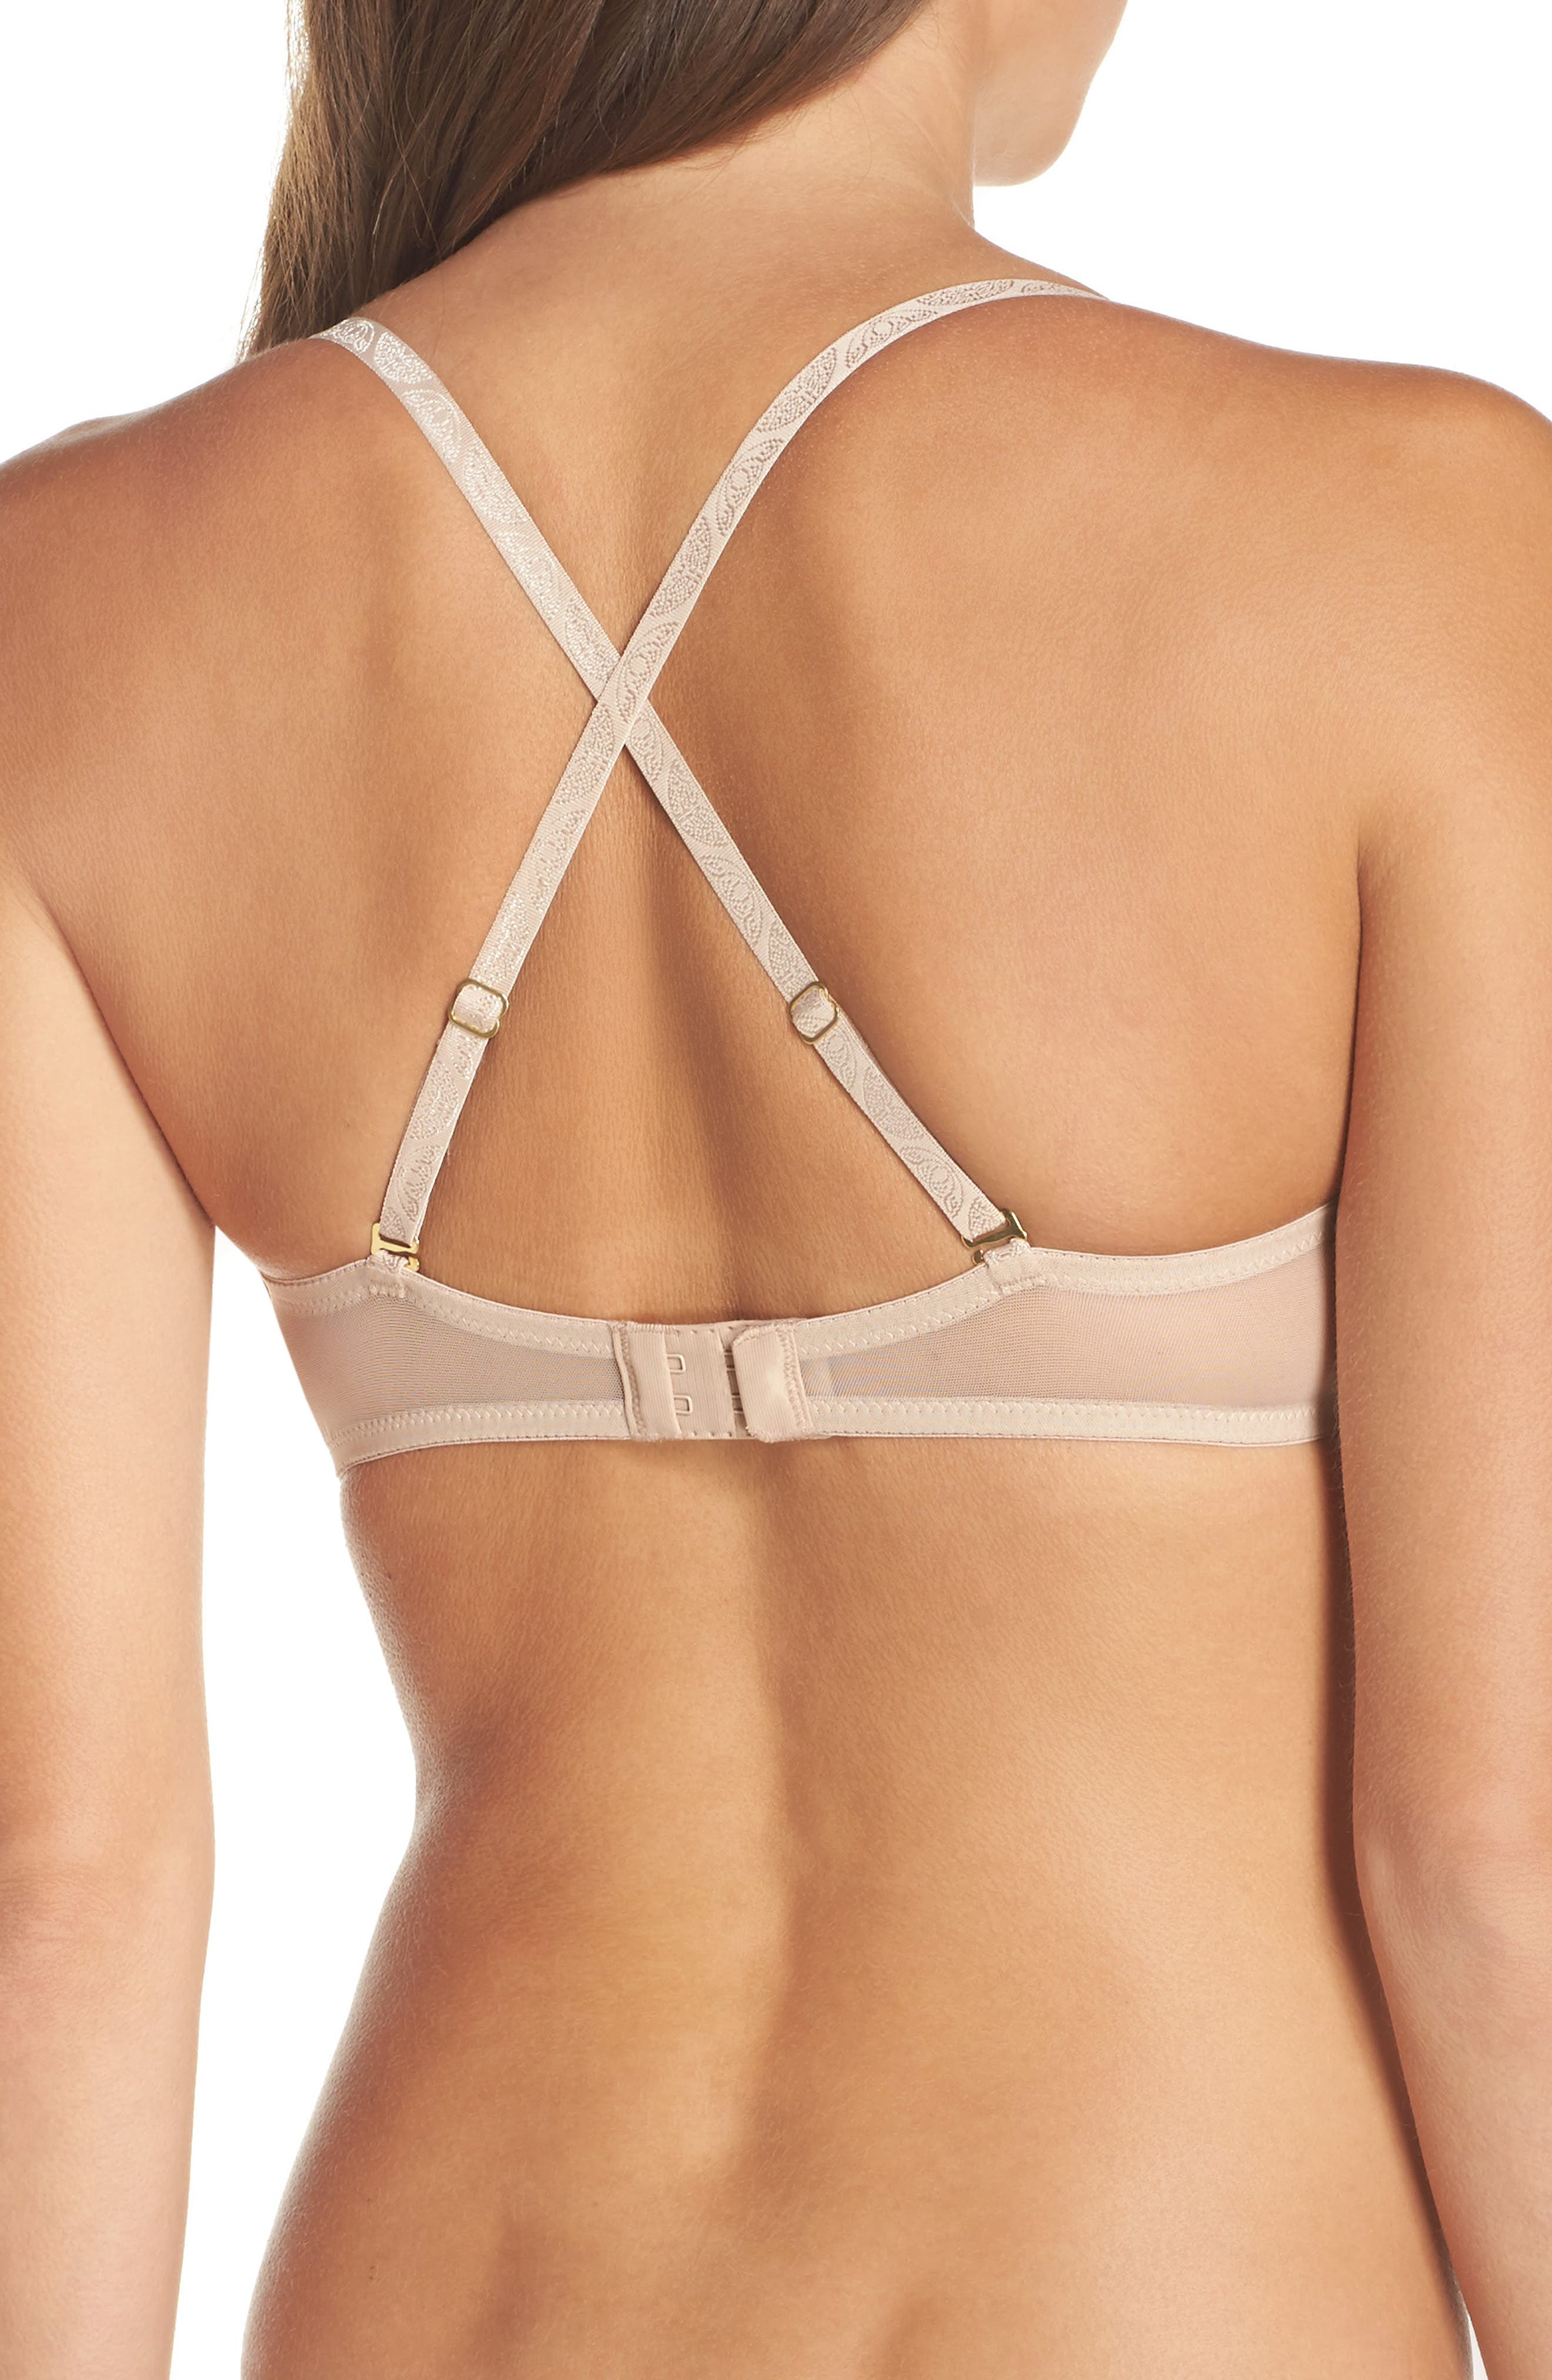 Alternate Image 3  - Natori Convertible Underwire Bra